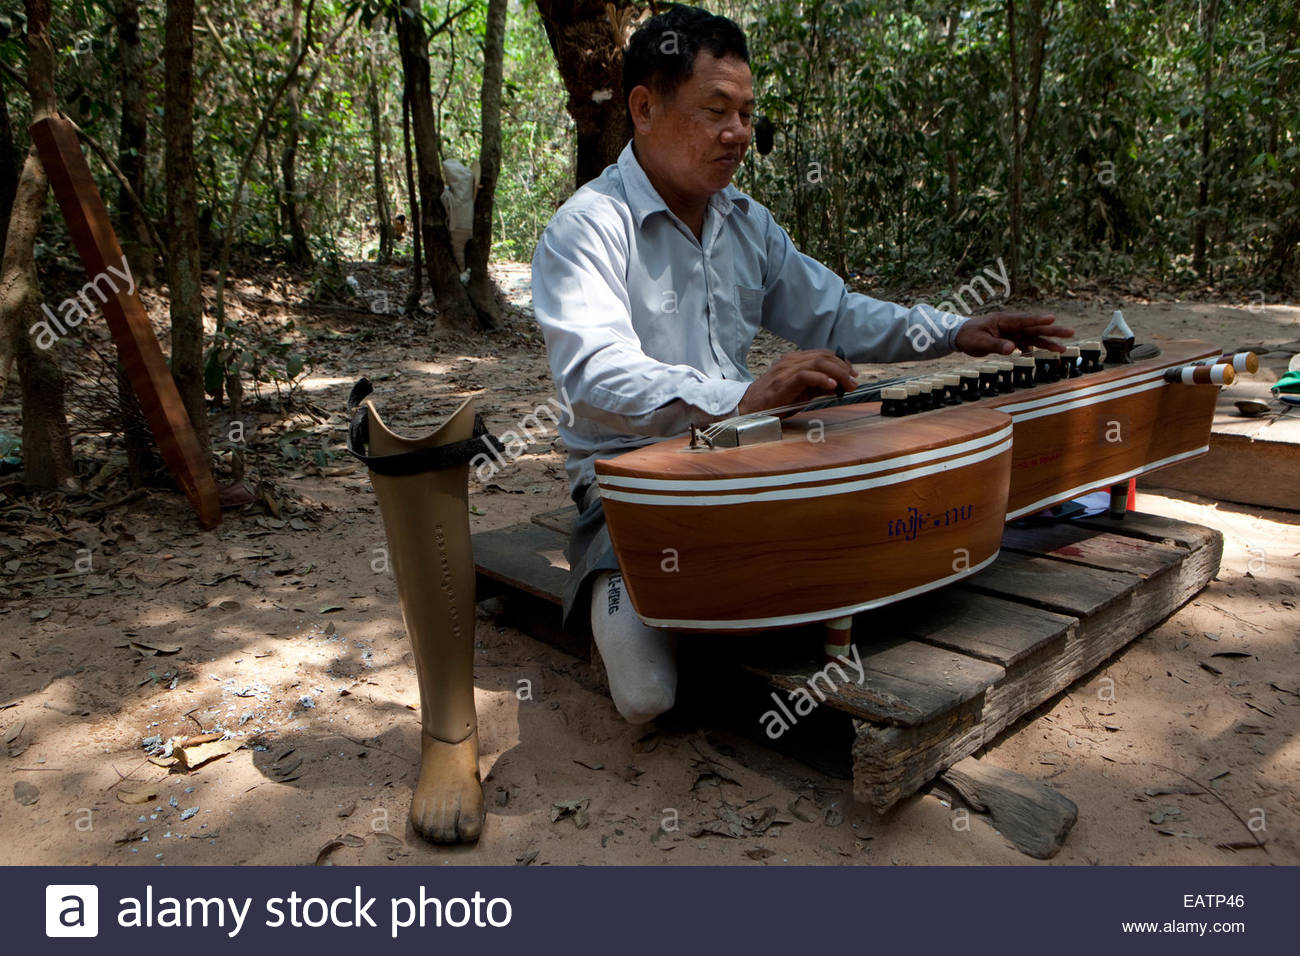 A war veteran plays his stringed instrument. - Stock Image